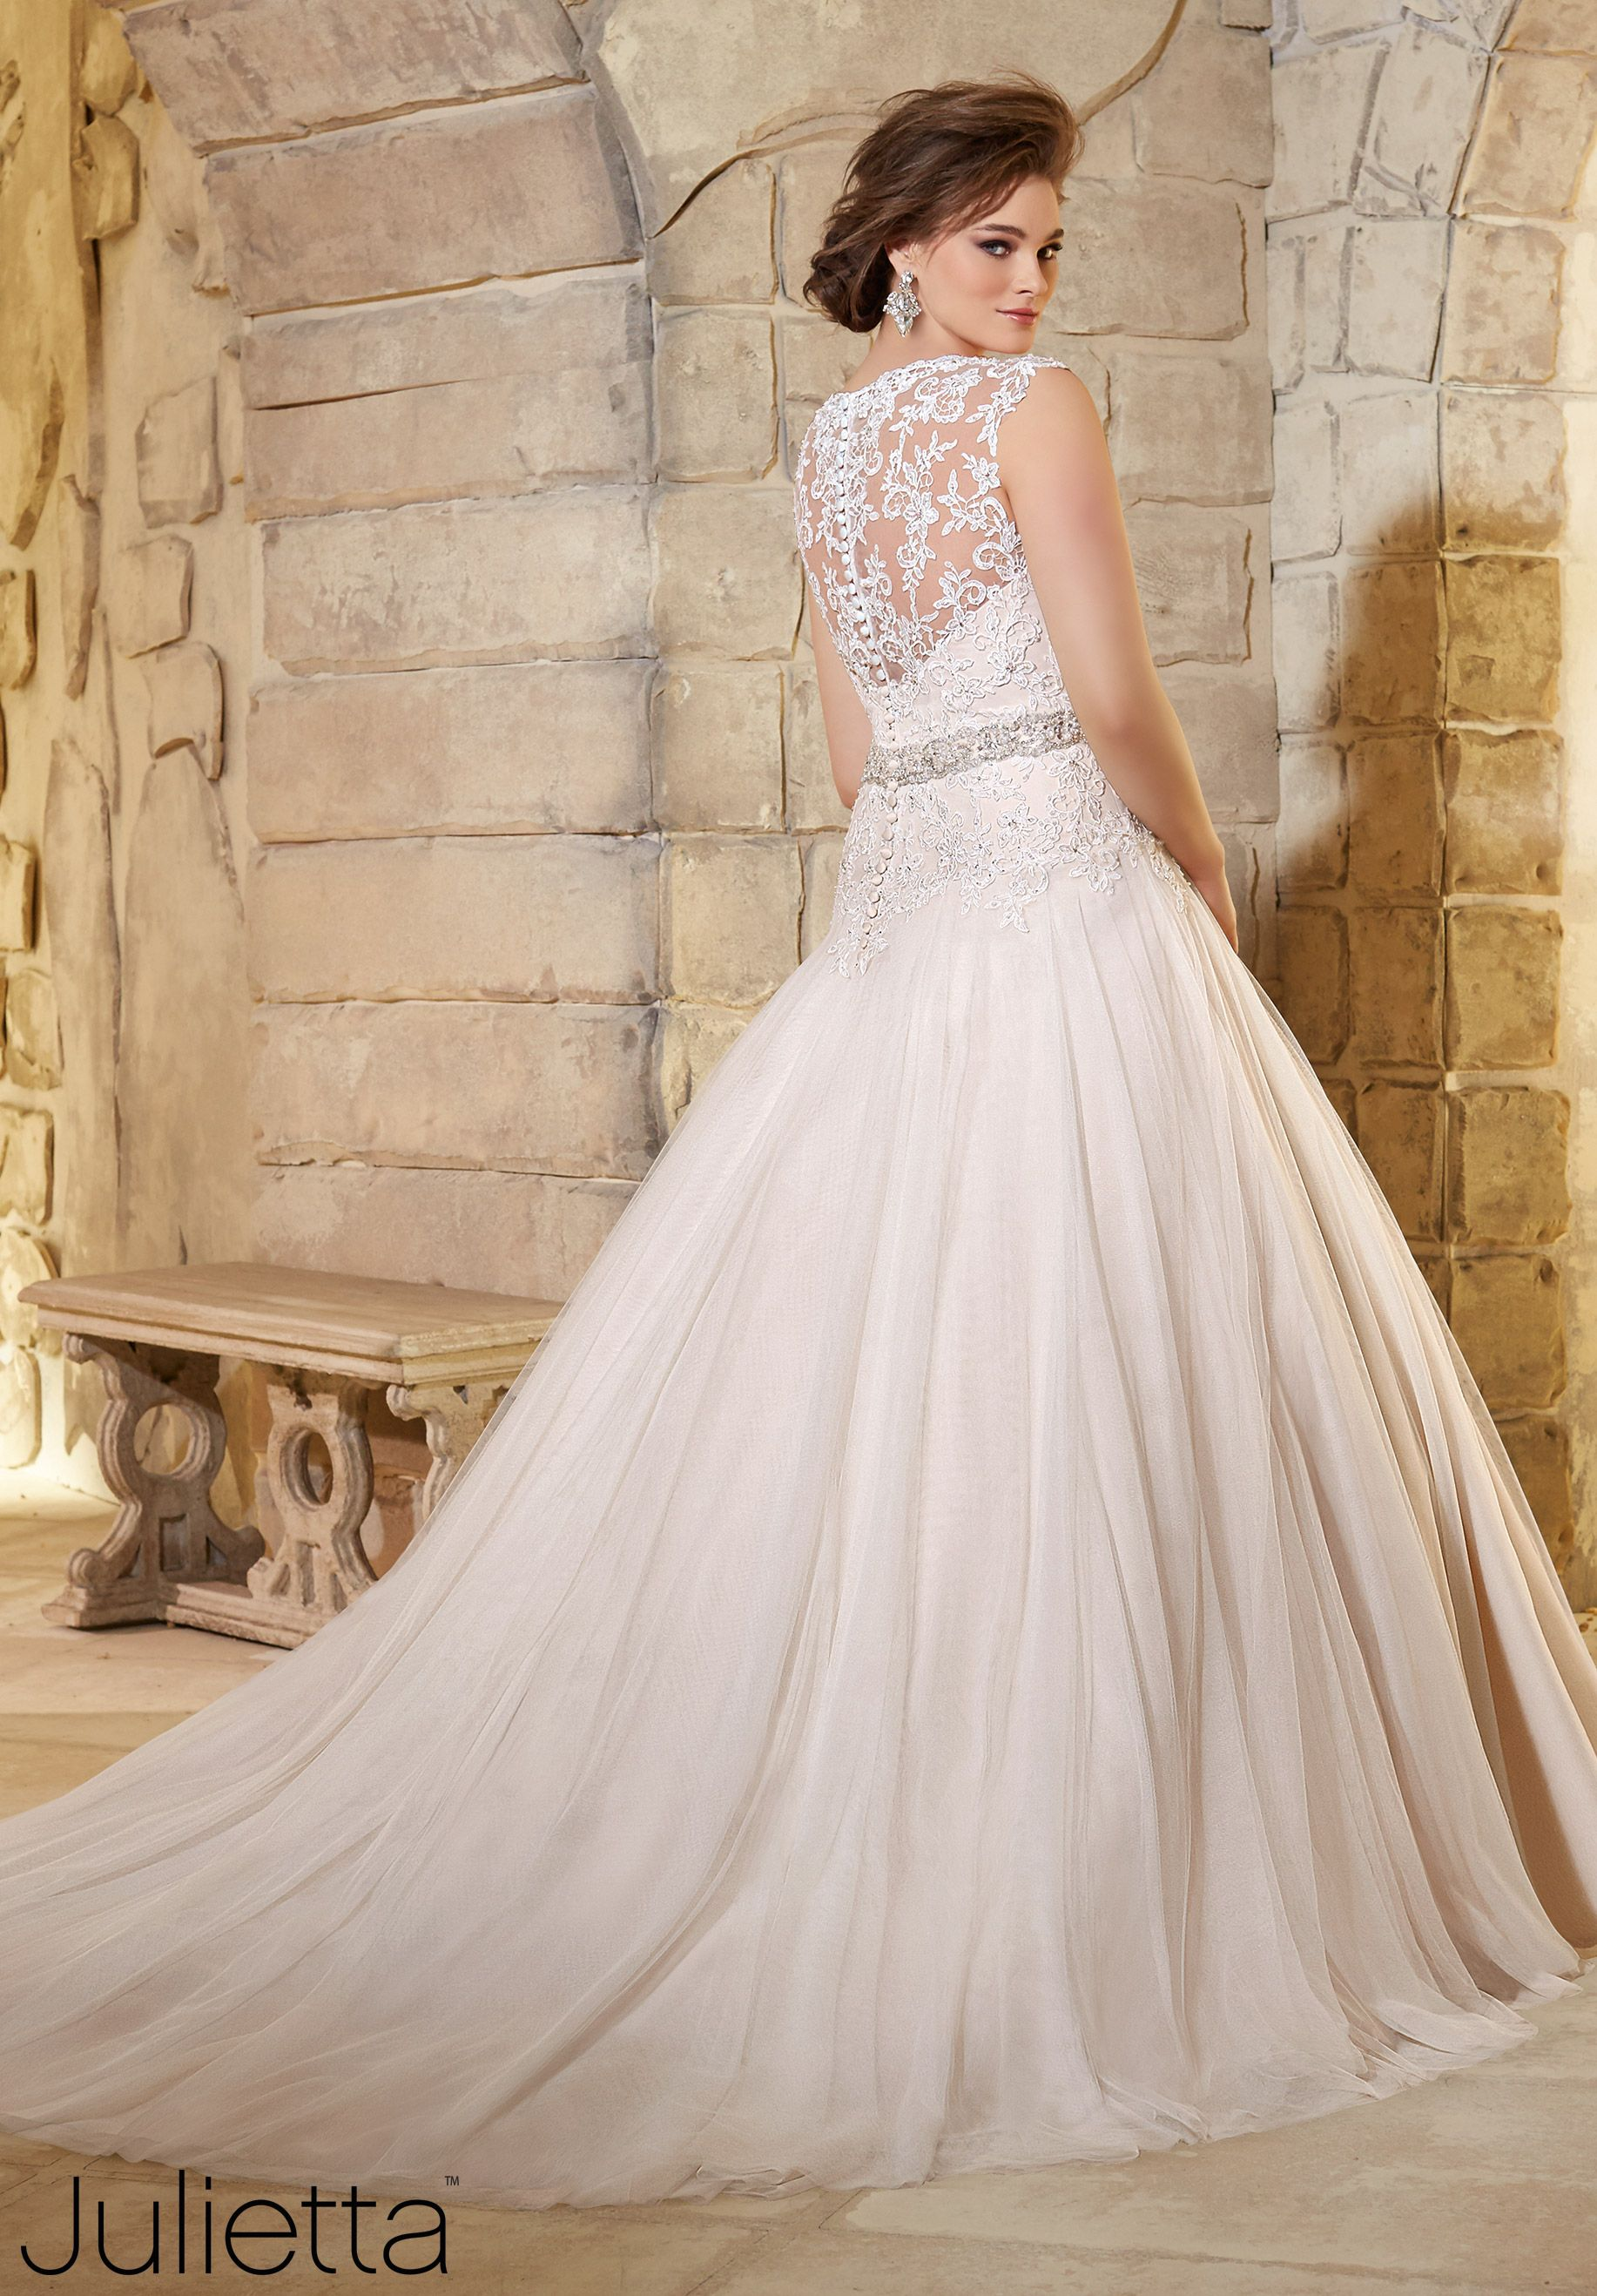 Embroidered lace wedding dress  Plus Size Wedding Dress  Embroidered Lace Appliques on Soft Net